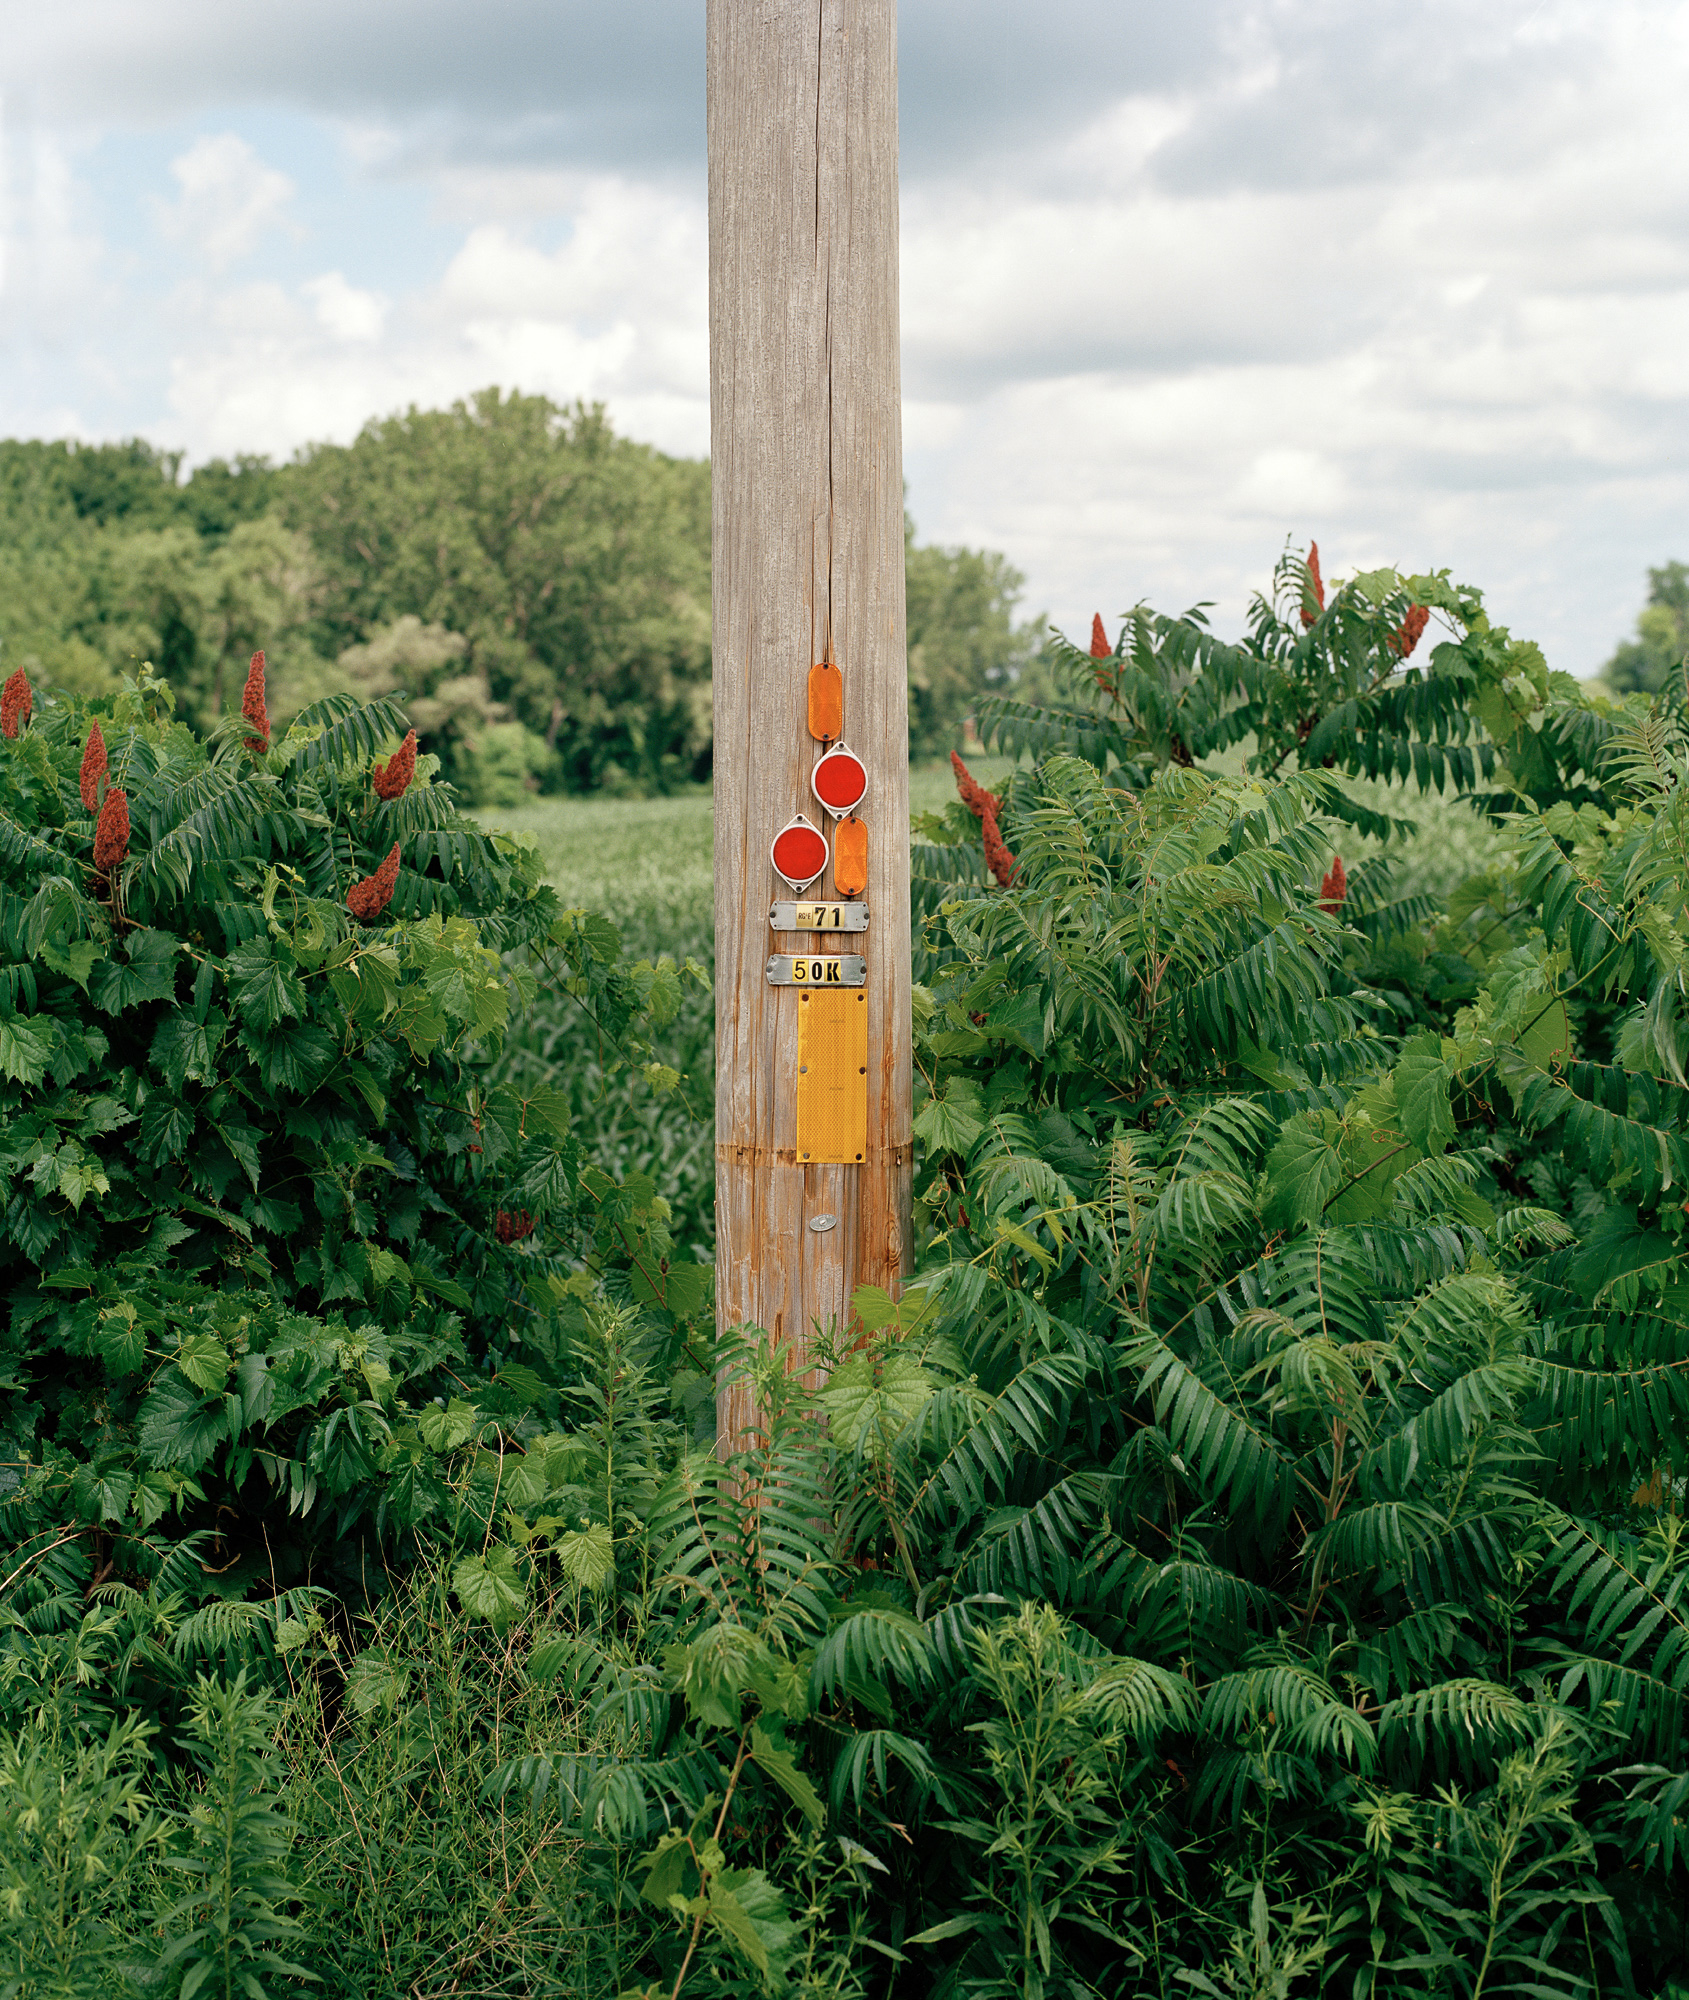 Power Line Pole with overgrown grass